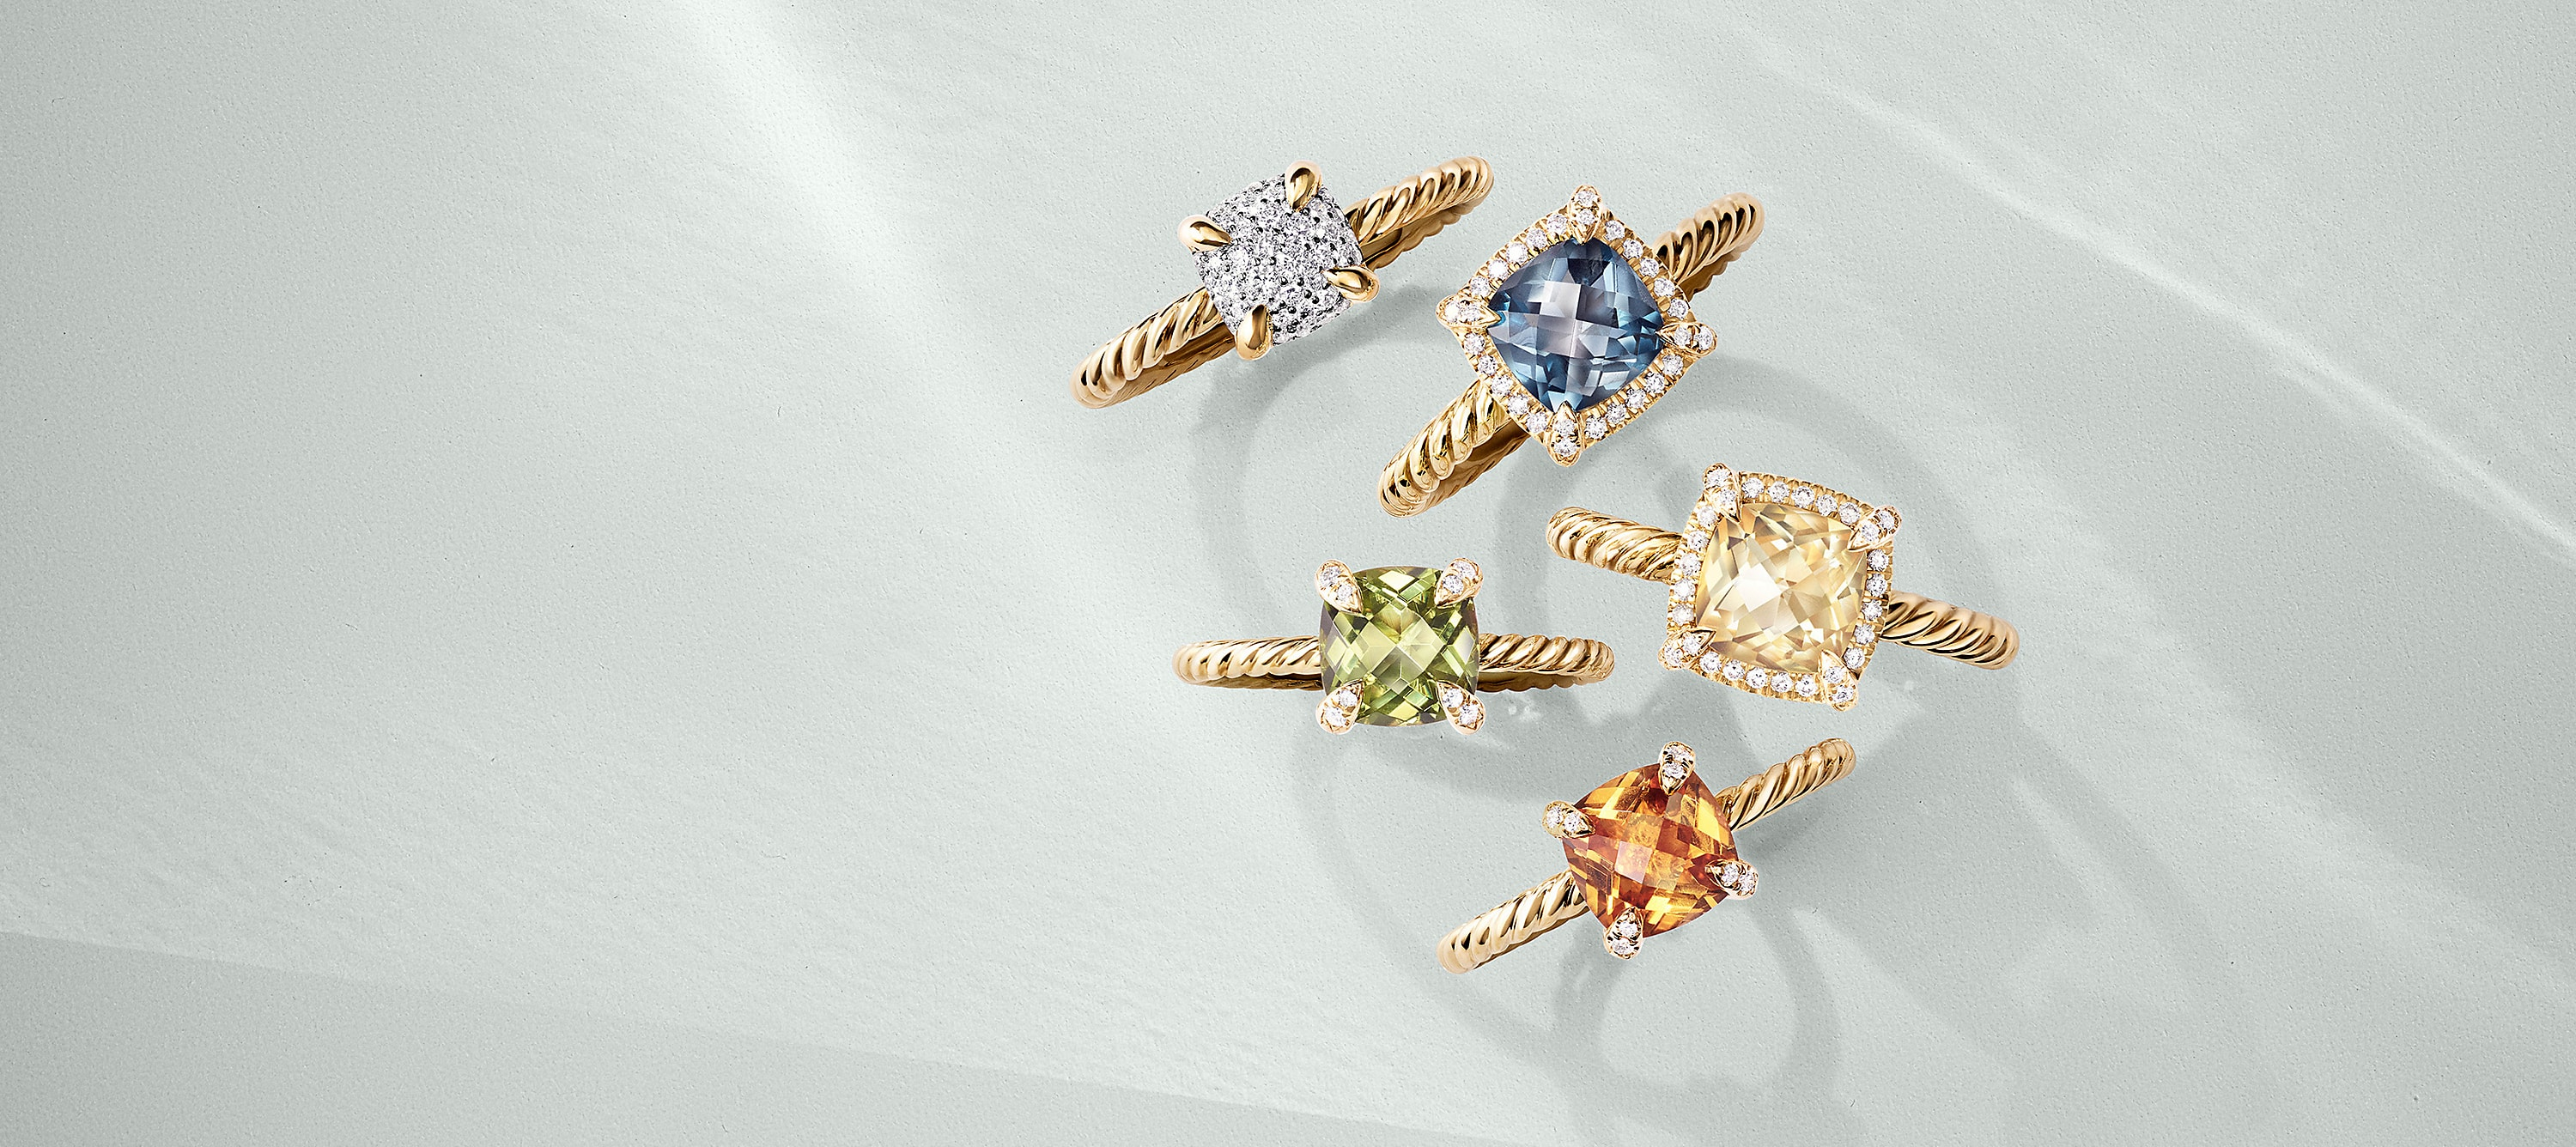 A color photo shows five David Yurman women's Châtelaine rings placed on a white background with soft shadows. The jewelry is crafted from 18K yellow gold with cushion-shaped center stones including pavé diamonds, Hampton blue topaz, peridot, or Champagne citrine or citrine.